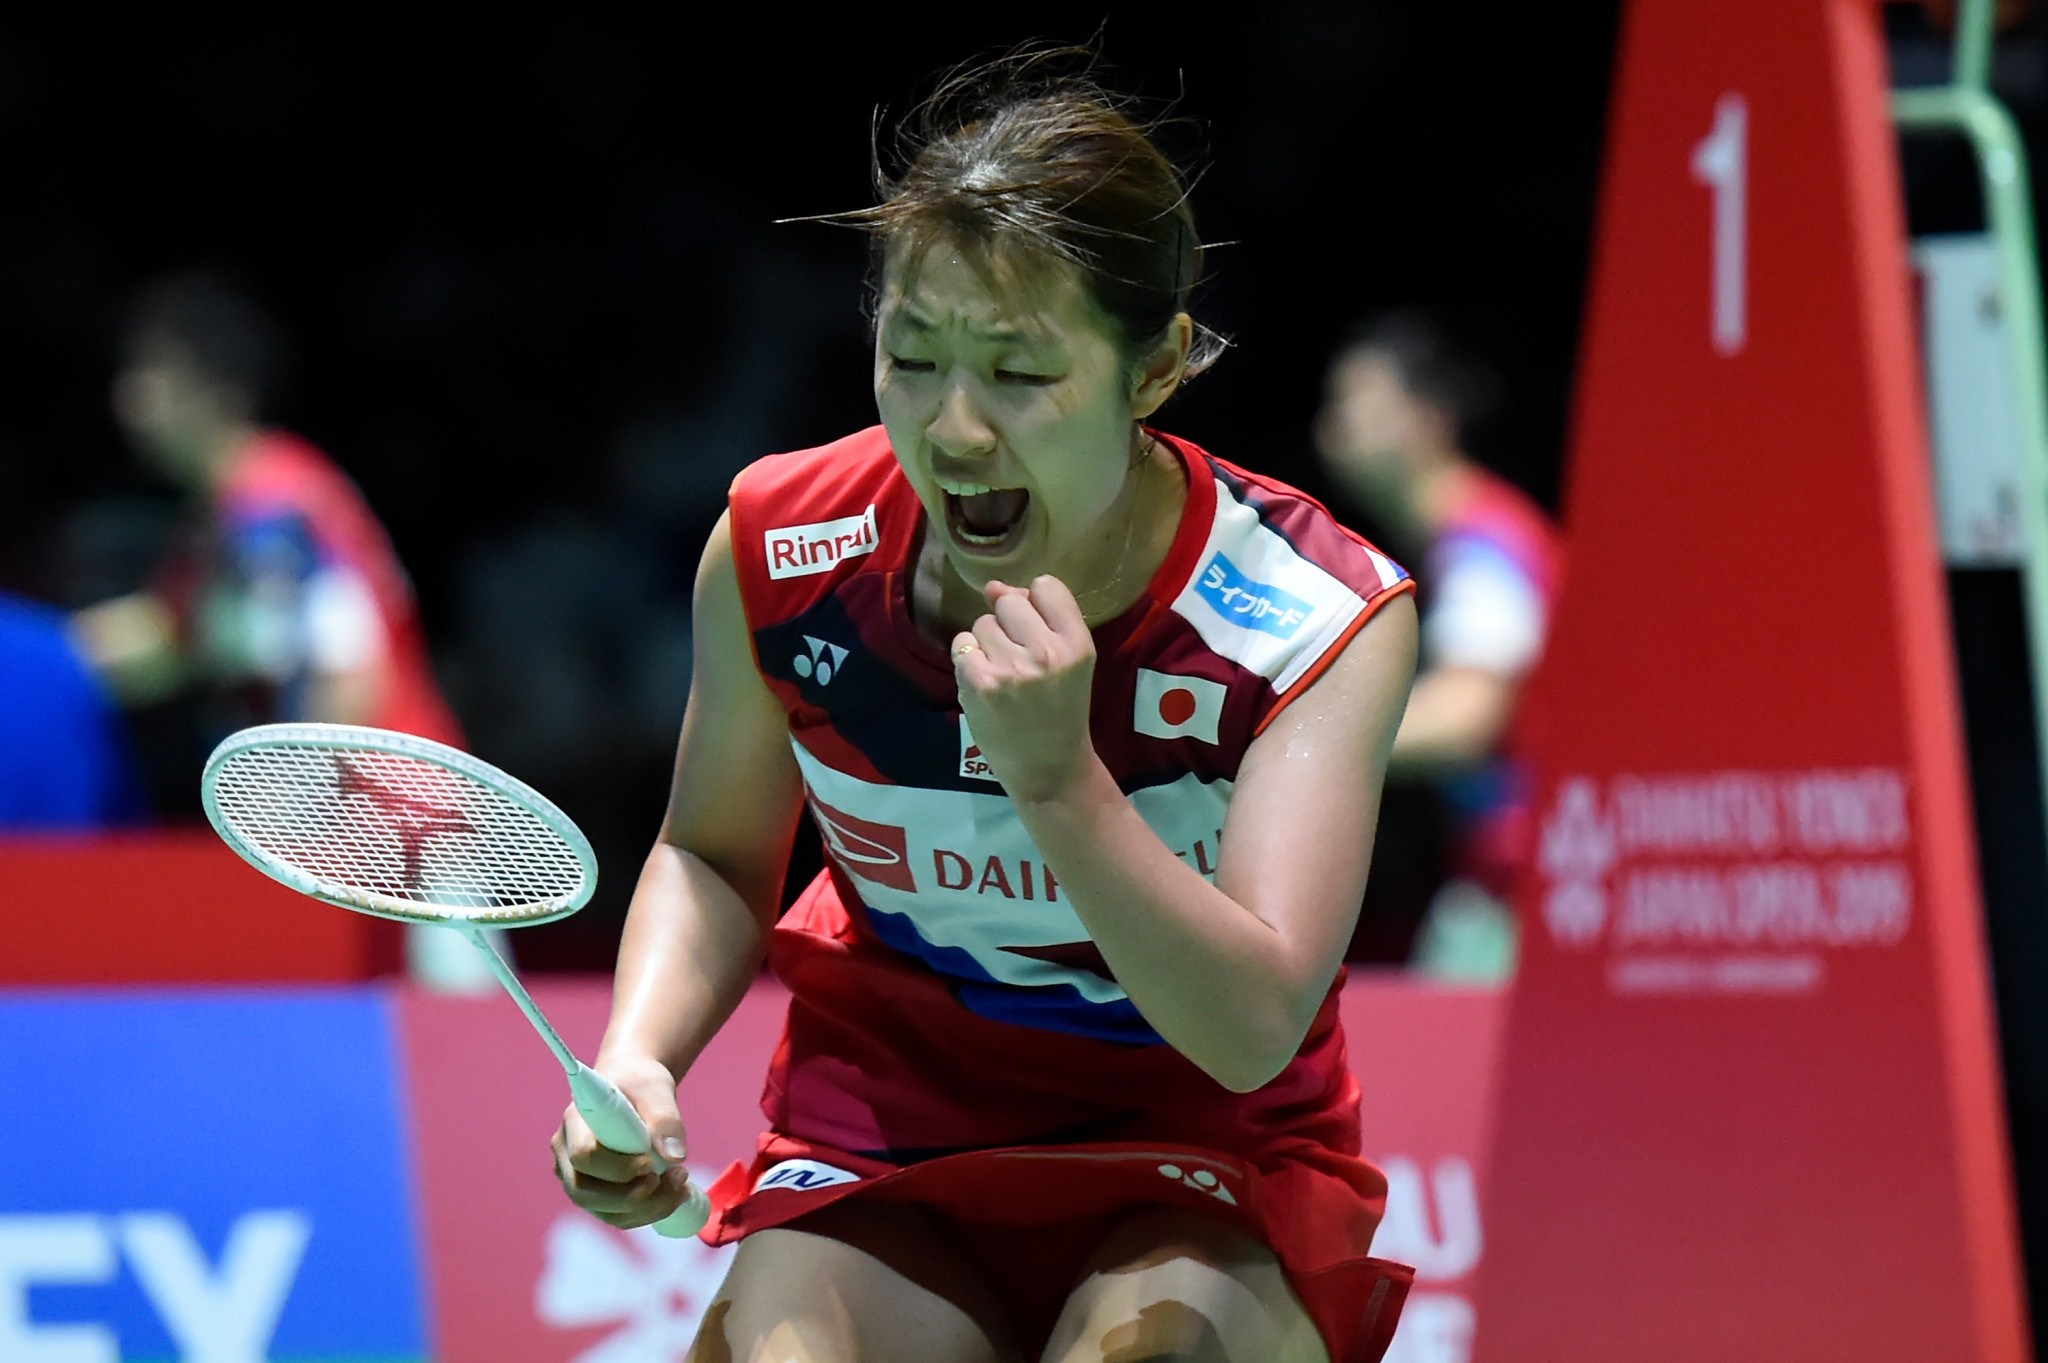 Nozomi Okuhara of Japan fended off a strong challenge from Spain's Carolina Marin to secure the women's singles crown ©Getty Images